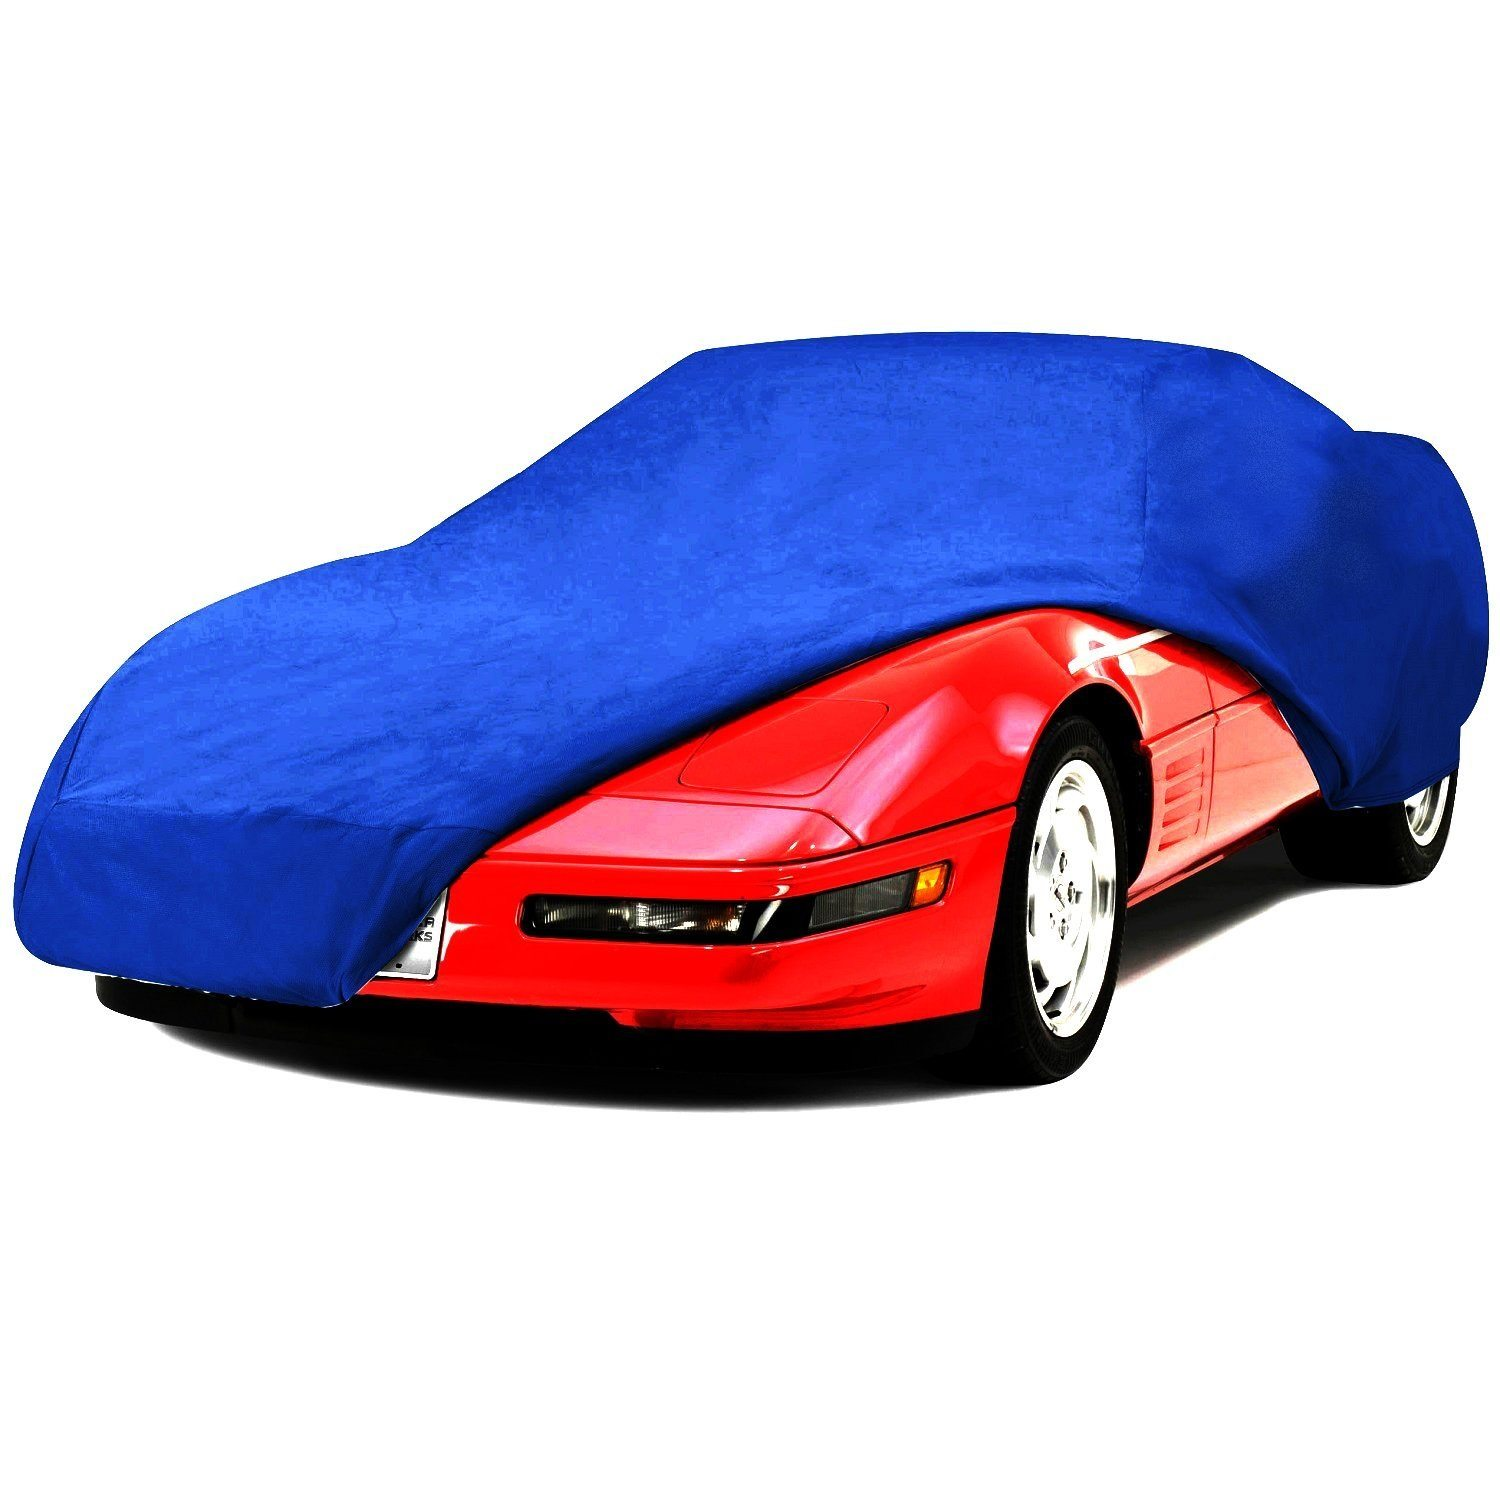 C4 Corvette Semi Custom Car Cover Blue